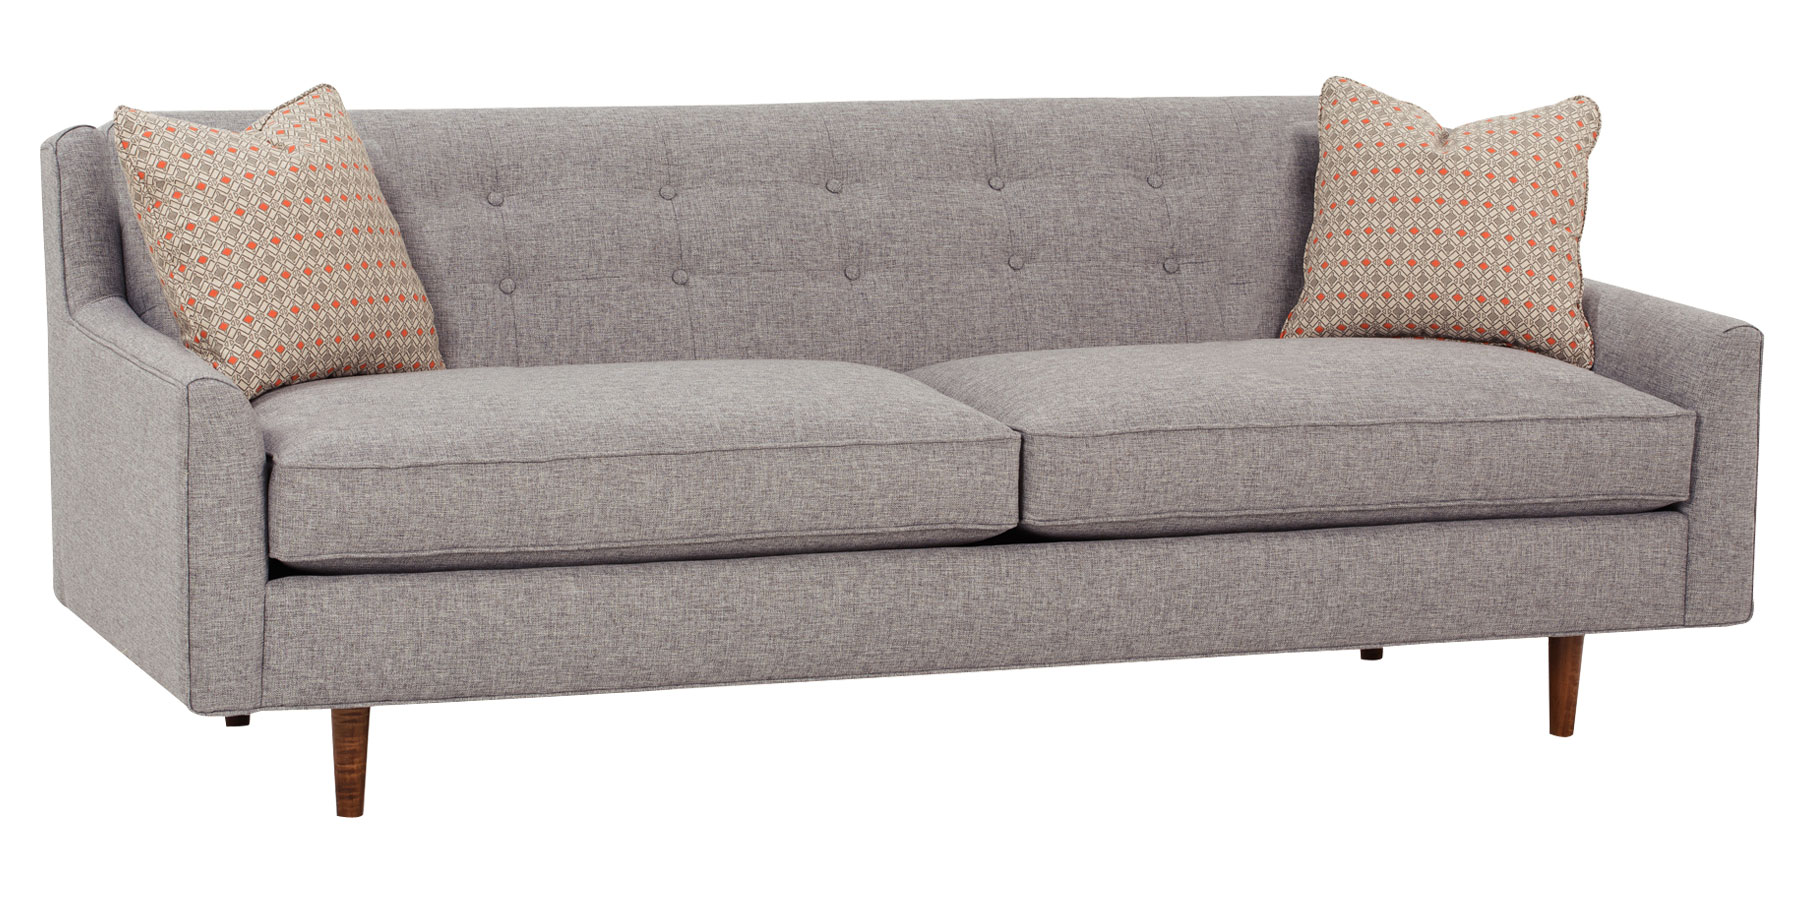 Mid Century Modern Sleeper Sofa Mid Century Fabric Sofa Group With Inset Legs Club Furniture